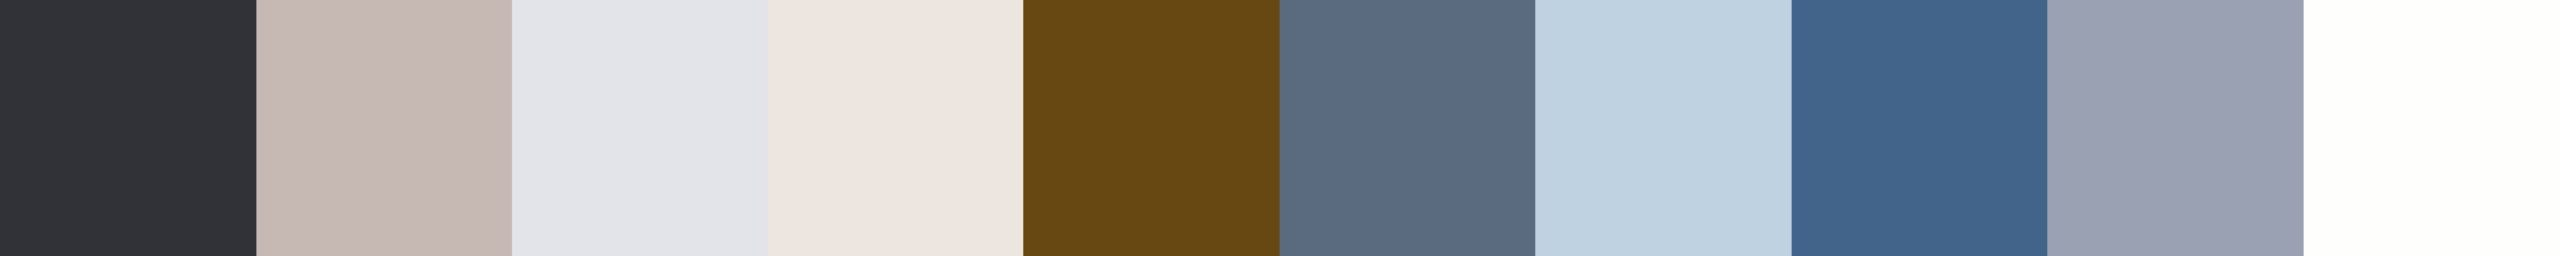 365 Mechadisia Color Palette